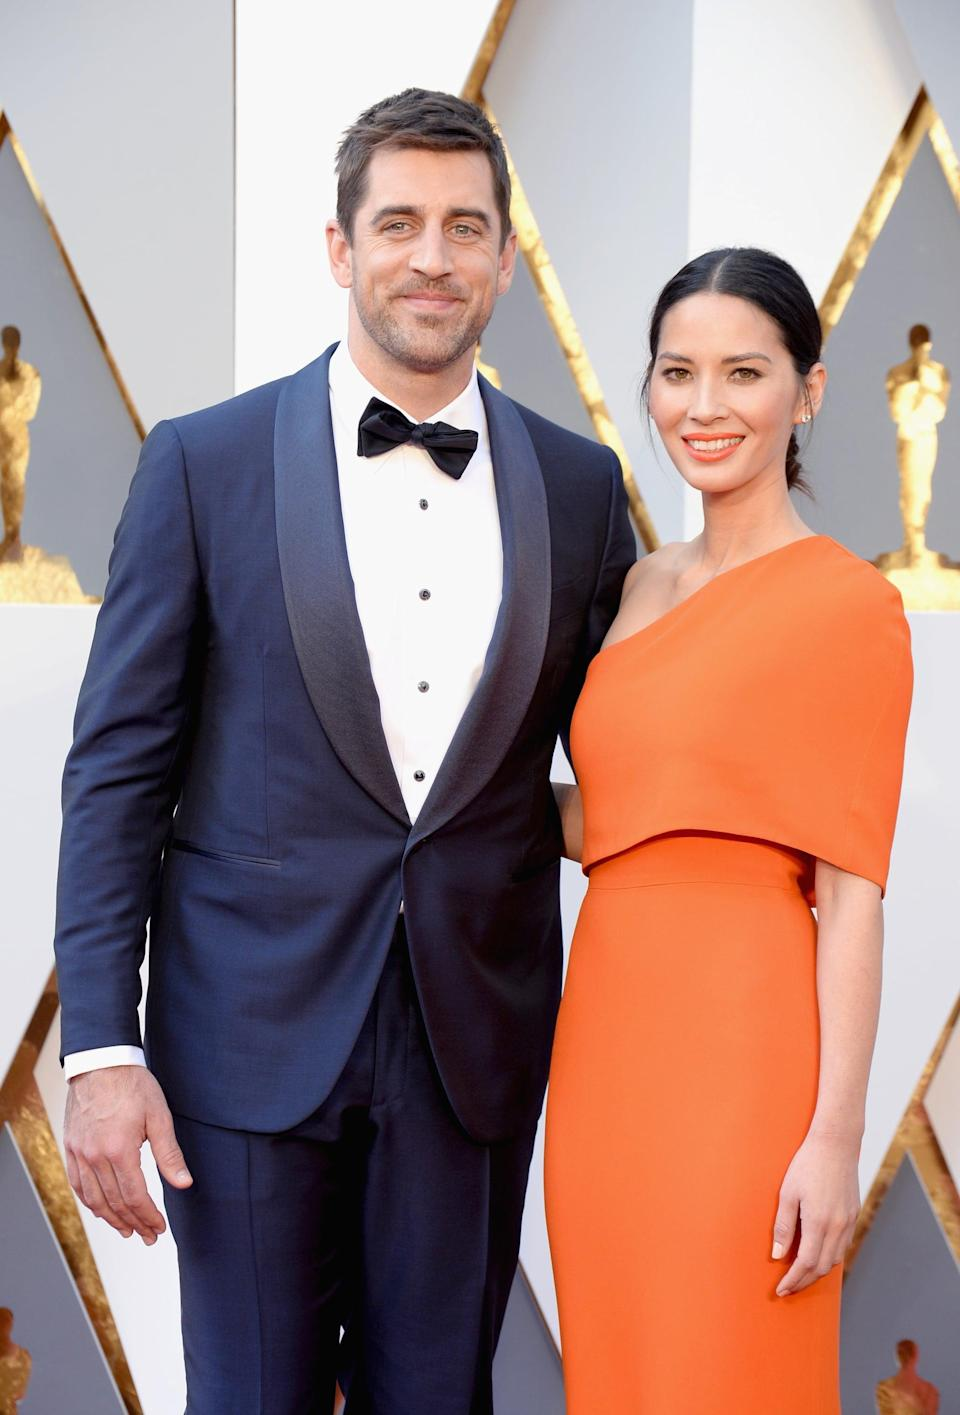 """<p><a href=""""https://www.popsugar.com/celebrity/Olivia-Munn-Aaron-Rodgers-Break-Up-43404229"""" class=""""link rapid-noclick-resp"""" rel=""""nofollow noopener"""" target=""""_blank"""" data-ylk=""""slk:Olivia and Aaron were together for three years"""">Olivia and Aaron were together for three years</a> before they went their separate ways in April 2017. According to <b>People</b>, <a href=""""https://people.com/celebrity/olivia-munn-aaron-rodgers-split/?xid=Popsugar"""" class=""""link rapid-noclick-resp"""" rel=""""nofollow noopener"""" target=""""_blank"""" data-ylk=""""slk:their split was amicable"""">their split was amicable</a> and they remain """"close friends."""" <a href=""""https://www.popsugar.com/celebrity/aaron-rodgers-engaged-shailene-woodley-48152702"""" class=""""link rapid-noclick-resp"""" rel=""""nofollow noopener"""" target=""""_blank"""" data-ylk=""""slk:Aaron is now engaged to Shailene Woodley"""">Aaron is now engaged to Shailene Woodley</a>. </p>"""